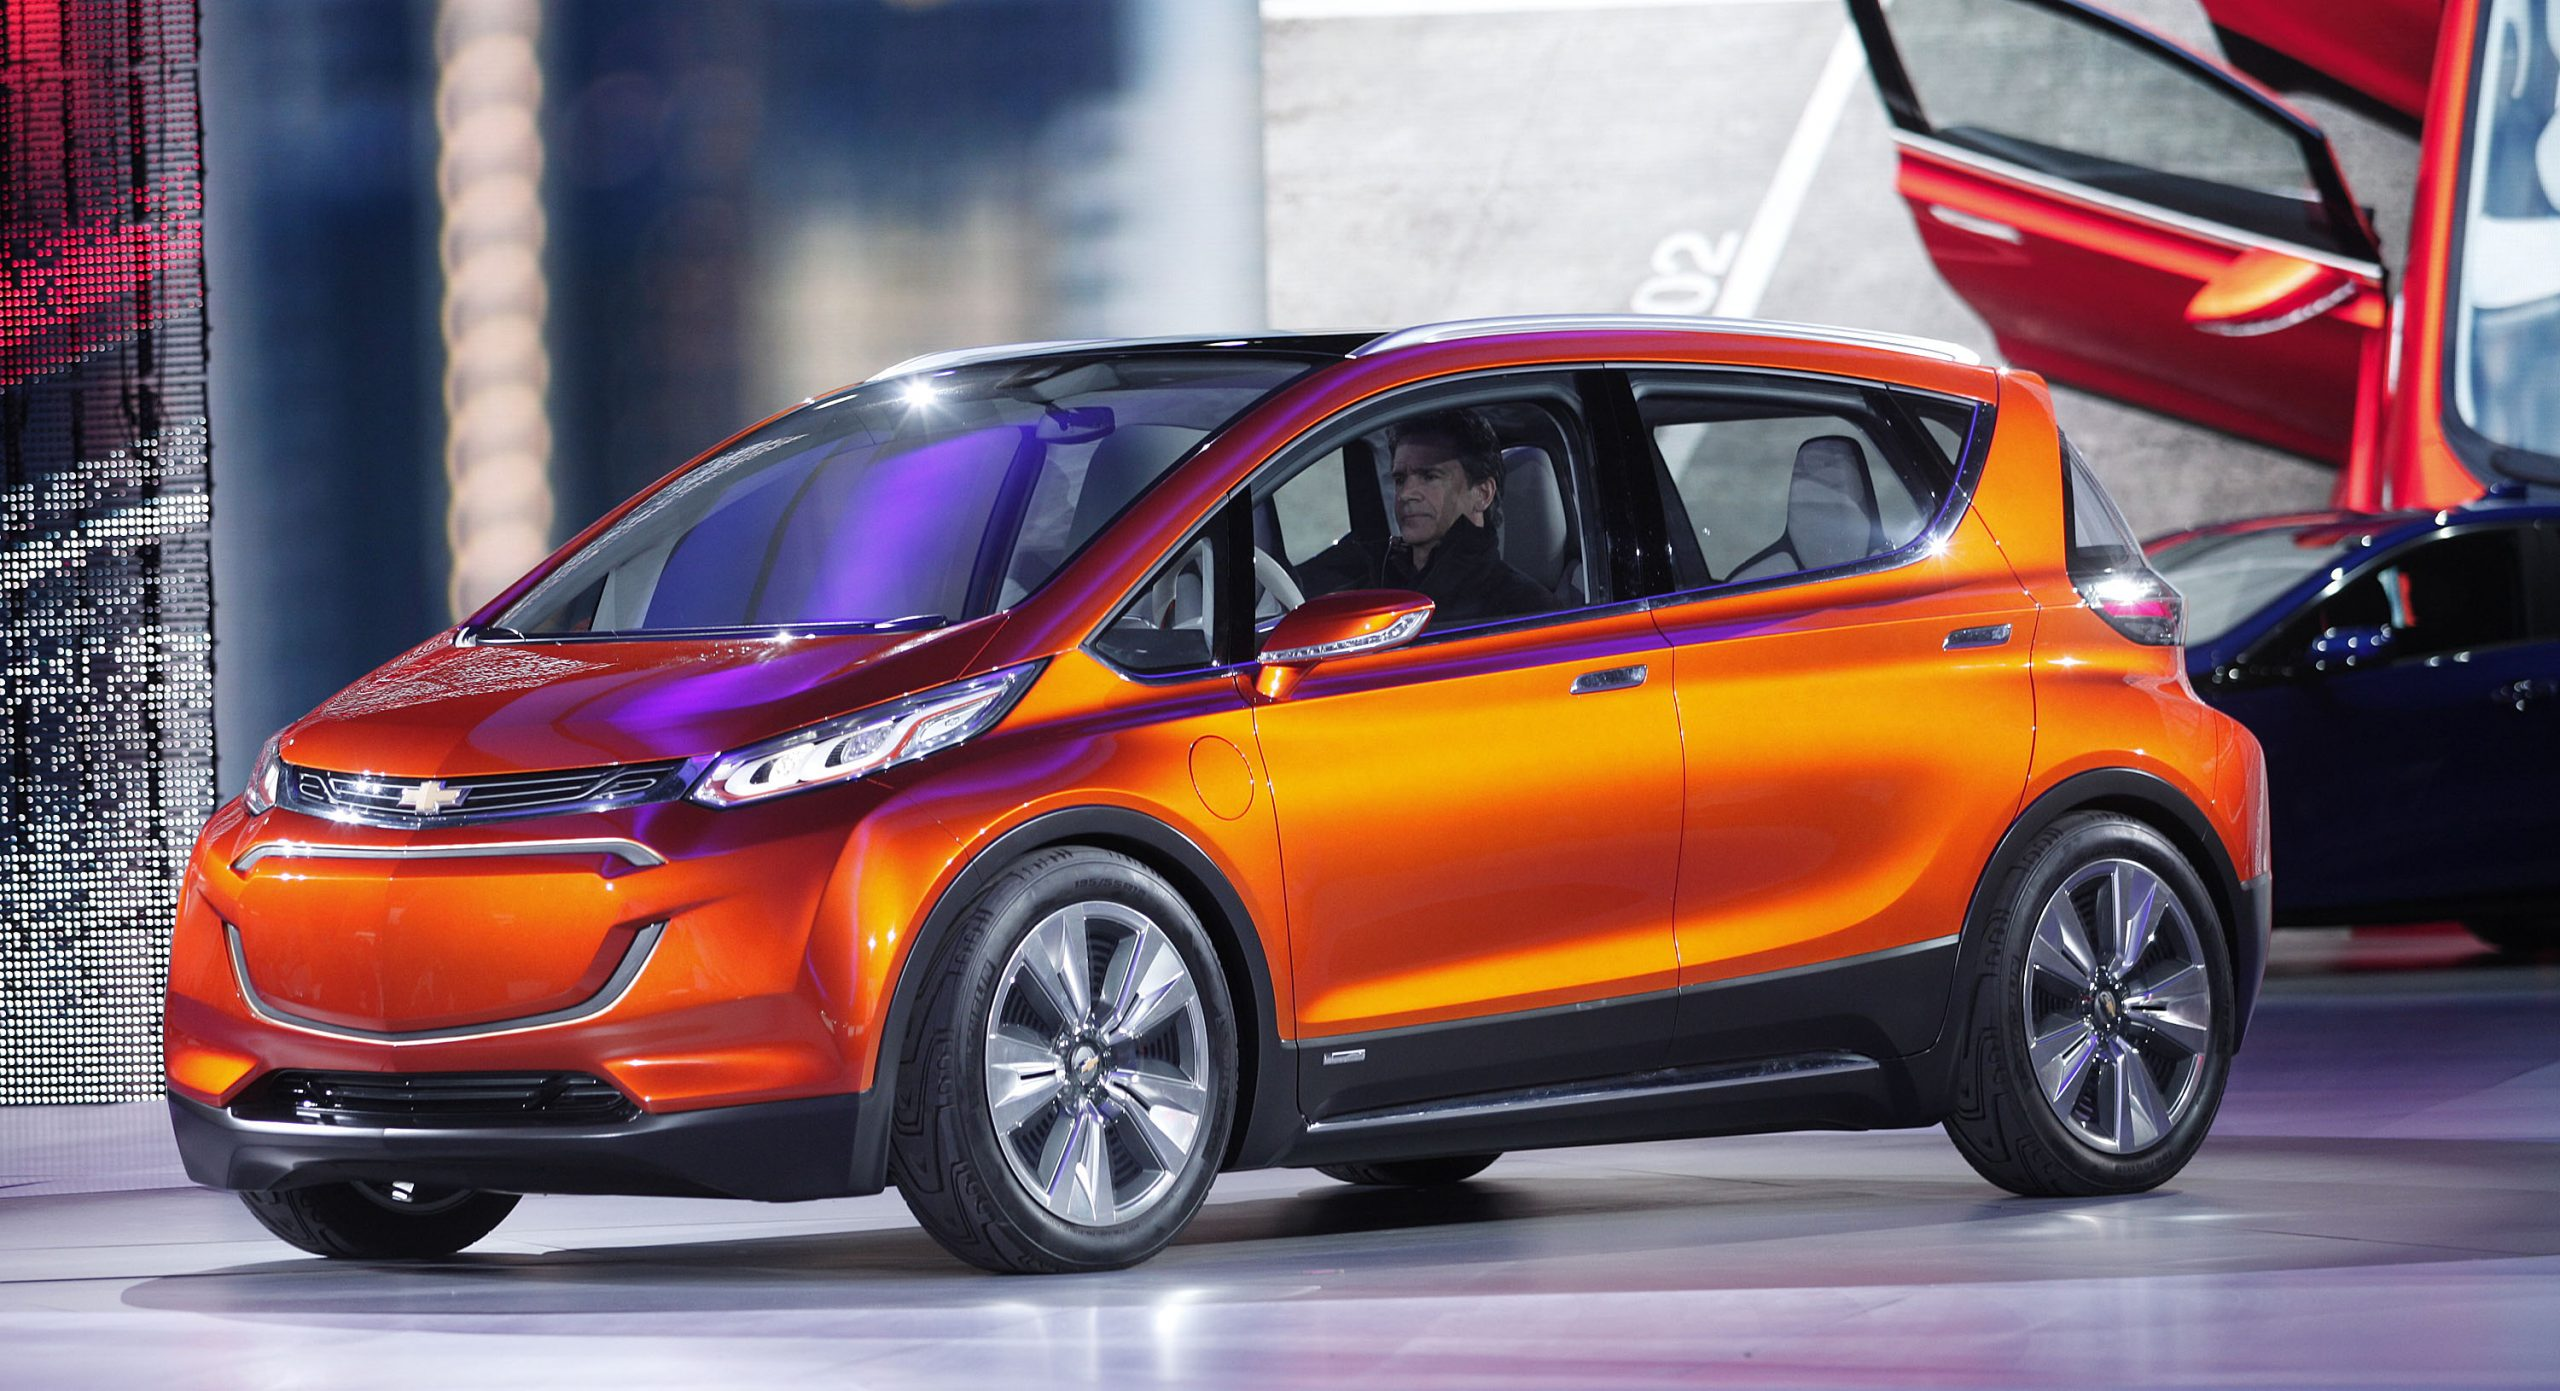 General Motors Recalling Bolt Model Electric Vehicles Over The Fire Risk